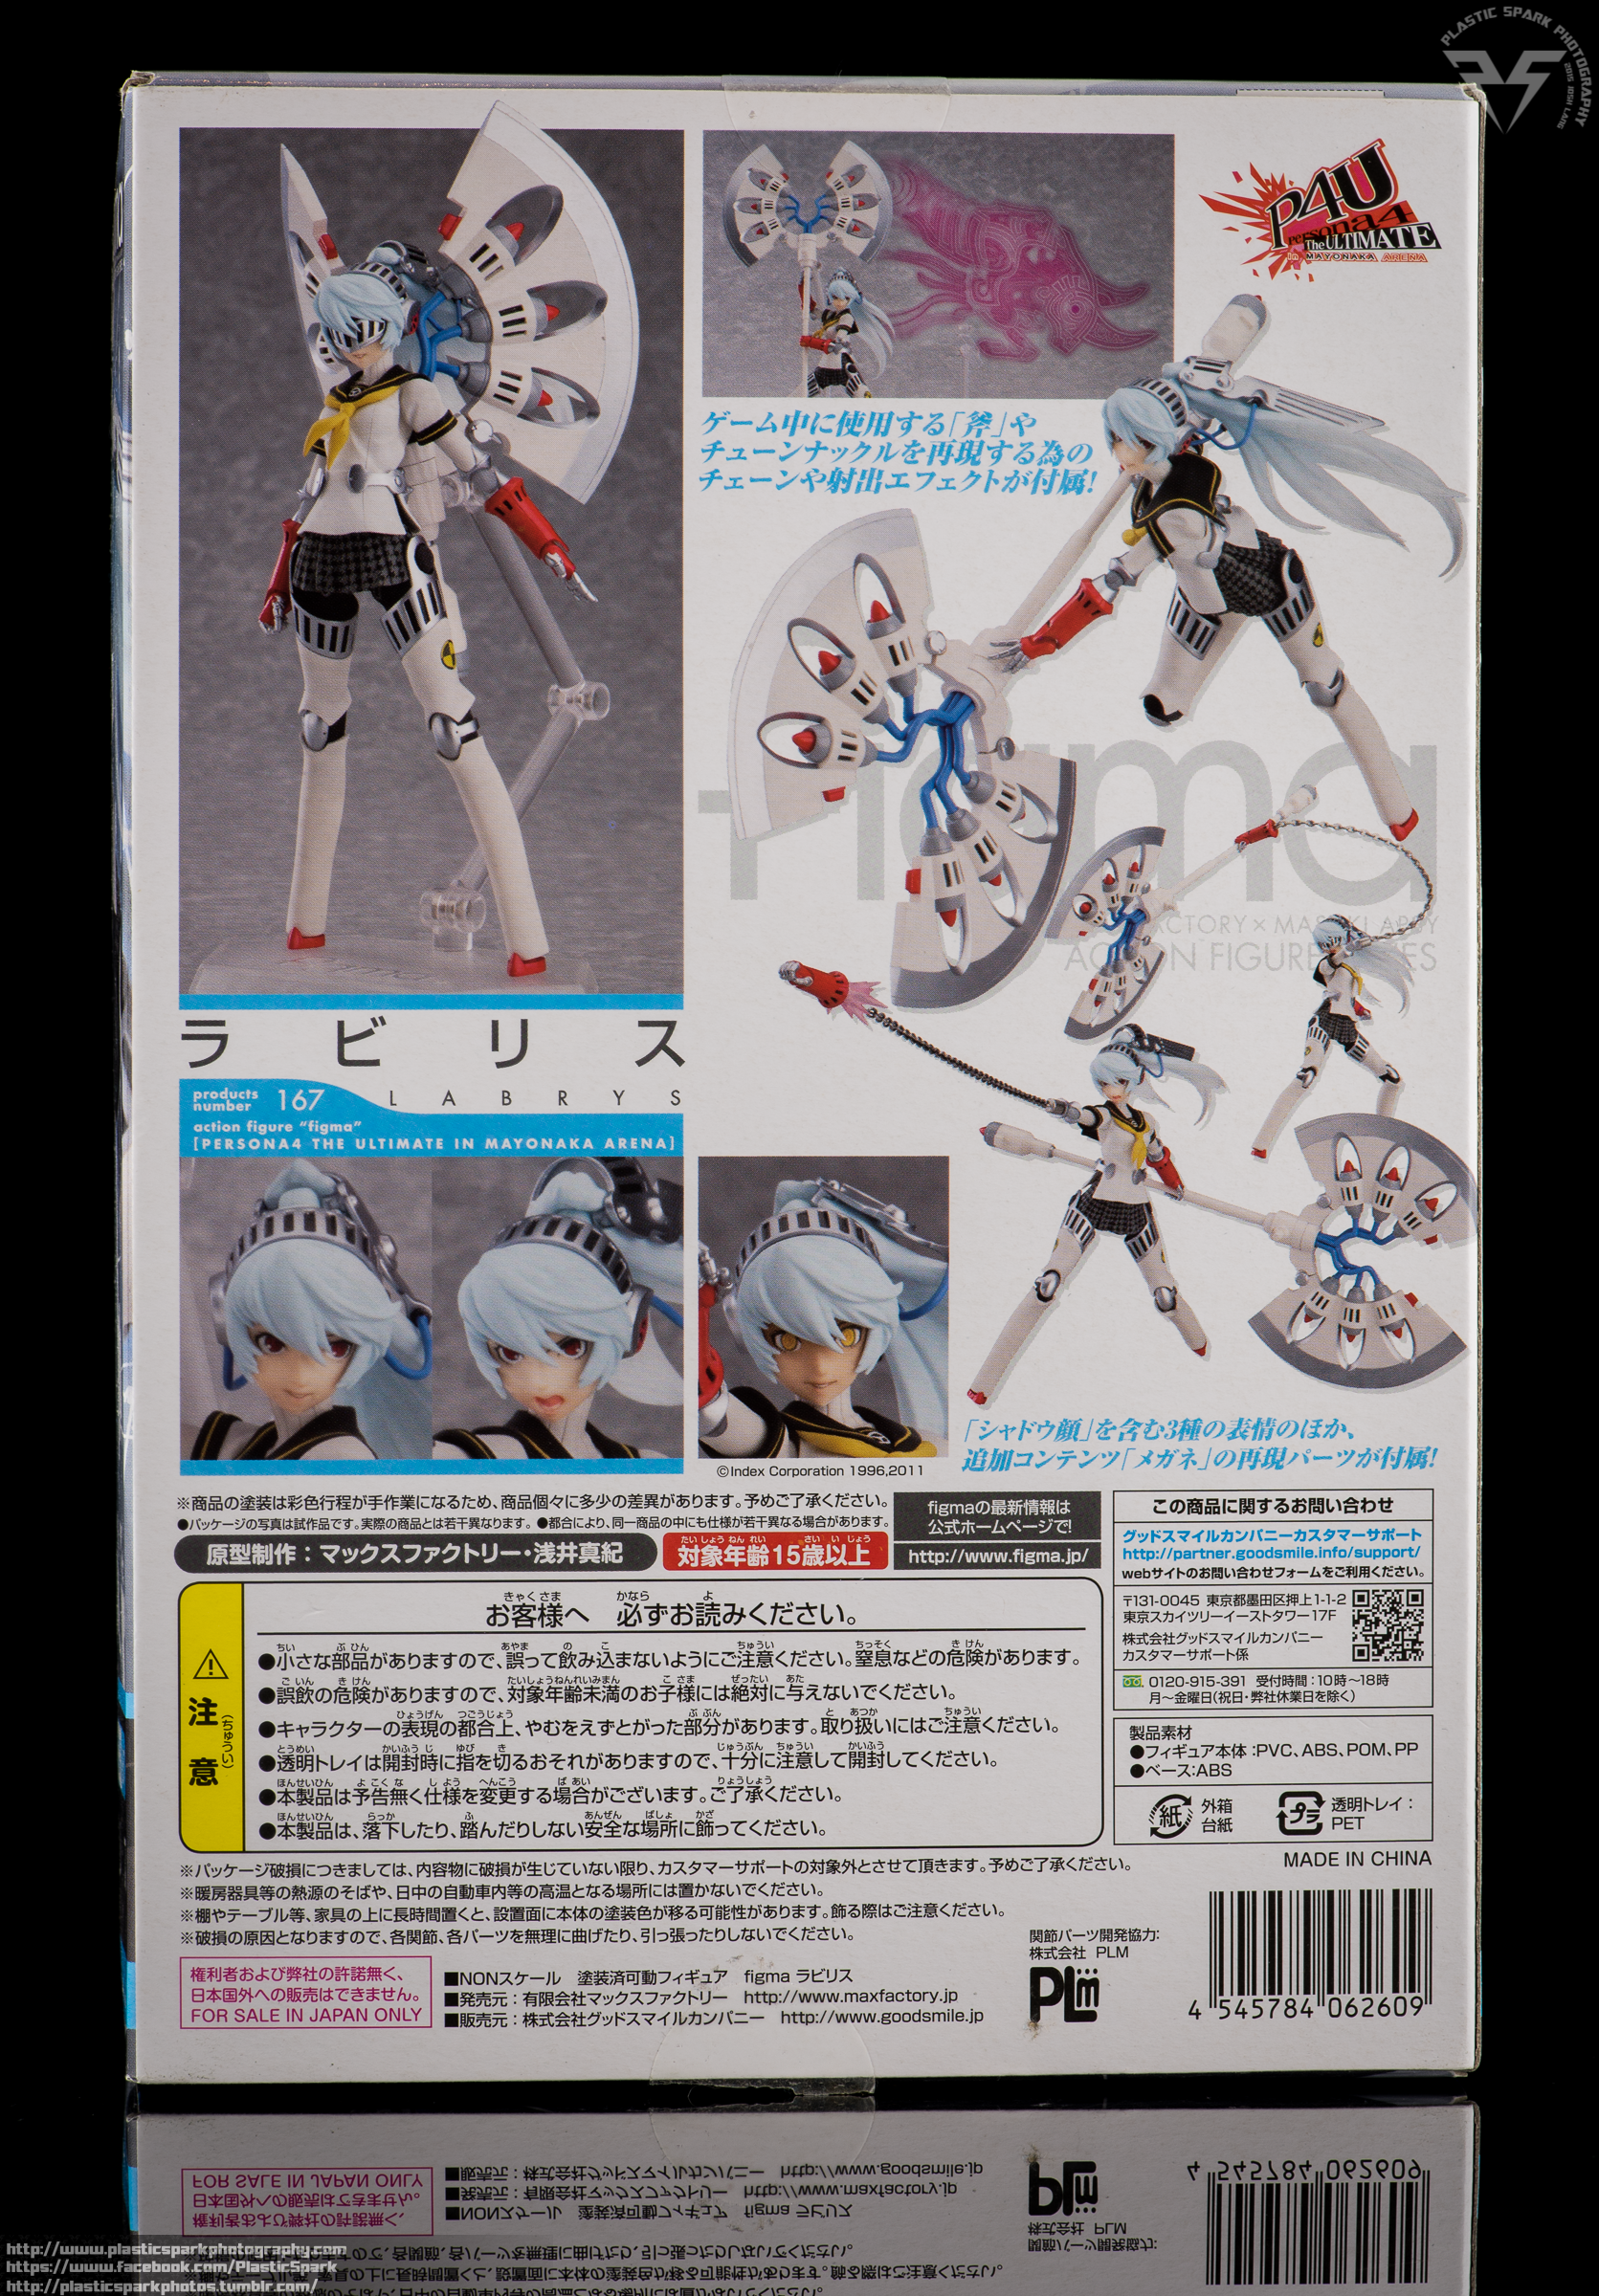 Figma-Labrys-(33-of-33).png